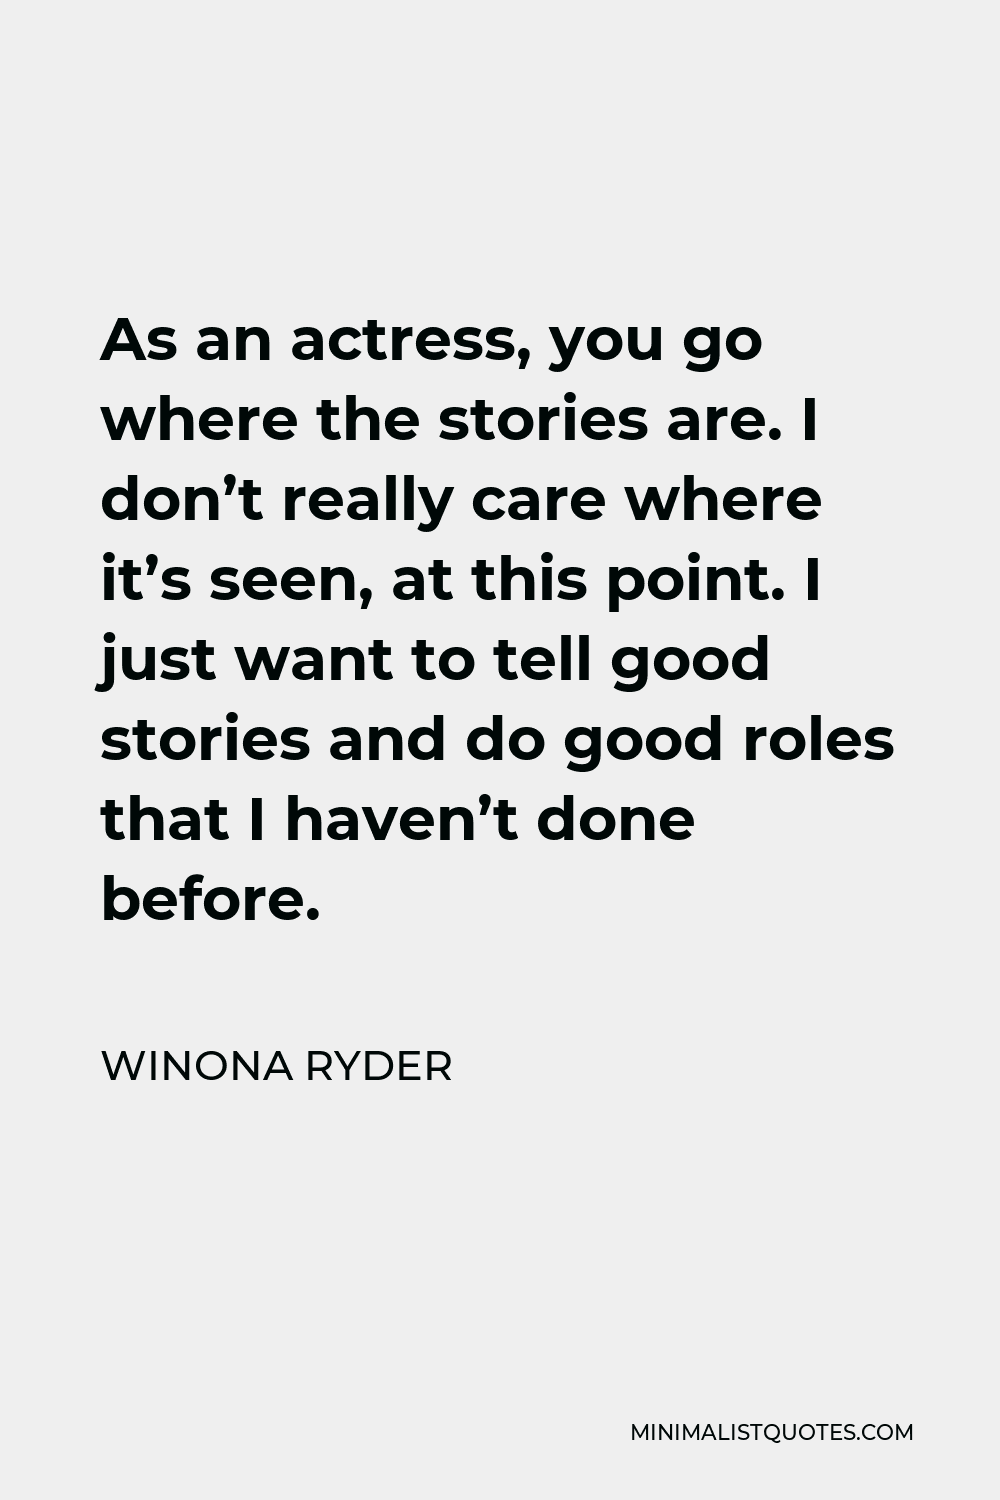 Winona Ryder Quote - As an actress, you go where the stories are. I don't really care where it's seen, at this point. I just want to tell good stories and do good roles that I haven't done before.